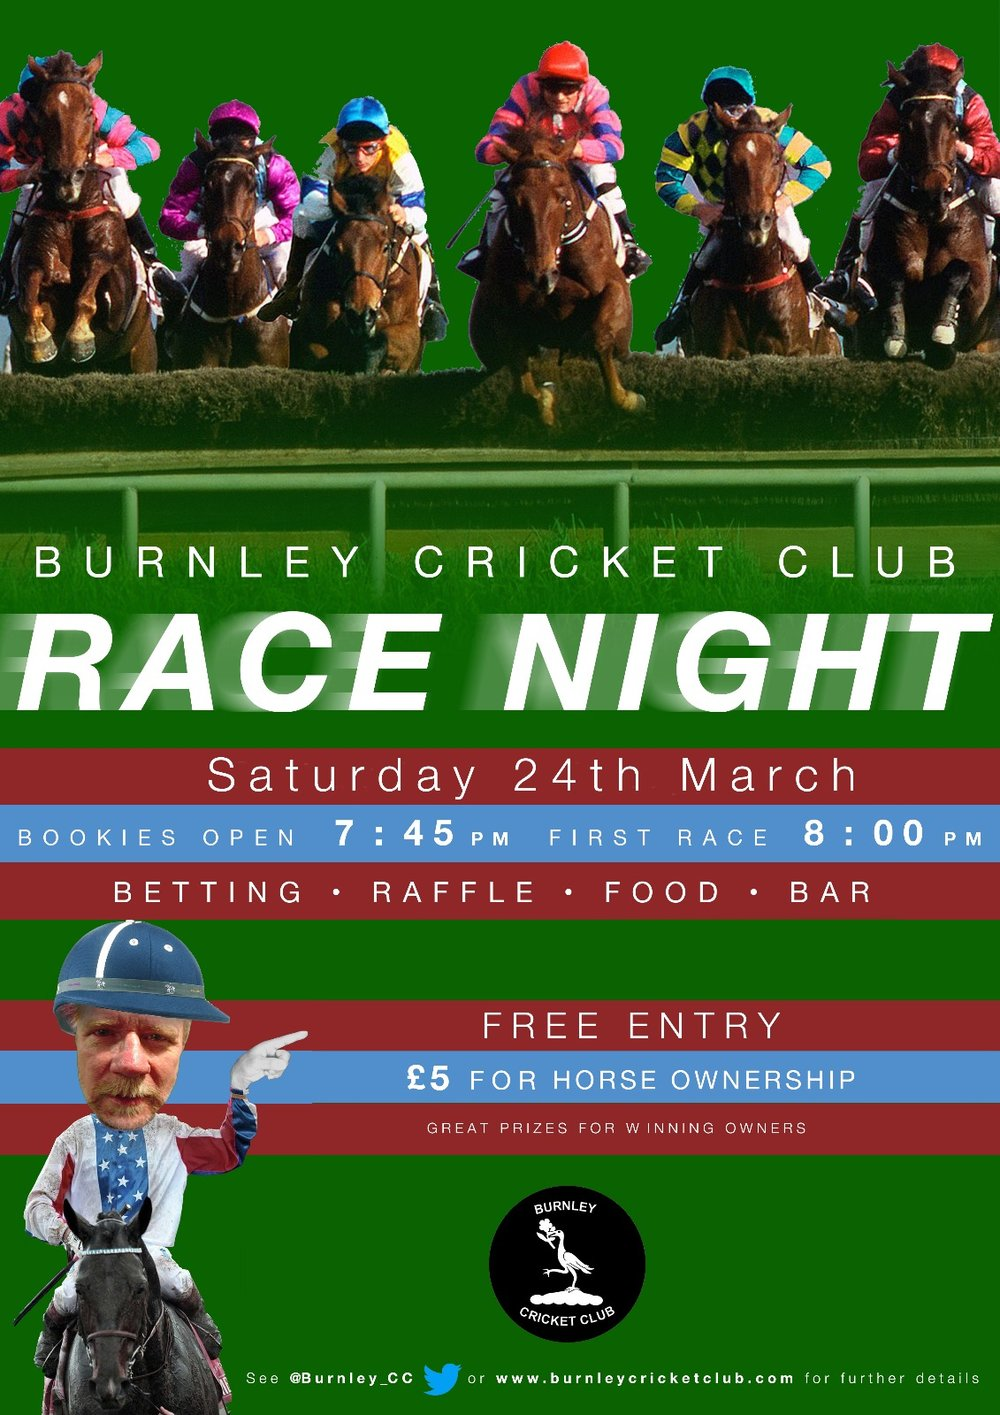 Burnley Cricket Club Race Night Saturday 24th March 2018